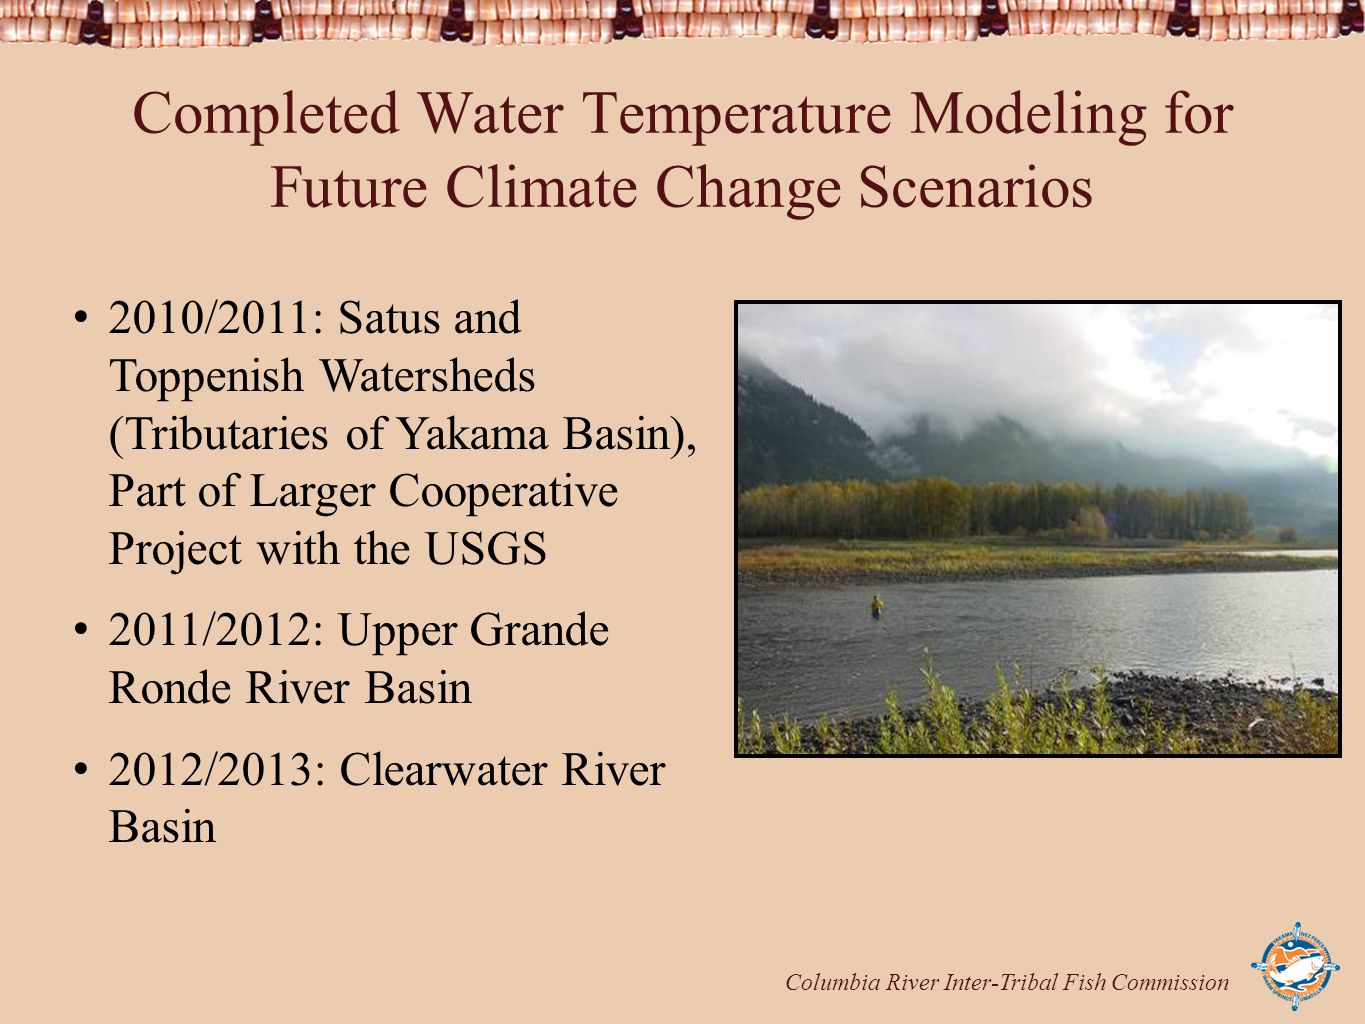 Columbia River Inter-Tribal Fish Commission Completed Water Temperature Modeling for Future Climate Change Scenarios 2010/2011: Satus and Toppenish Wa